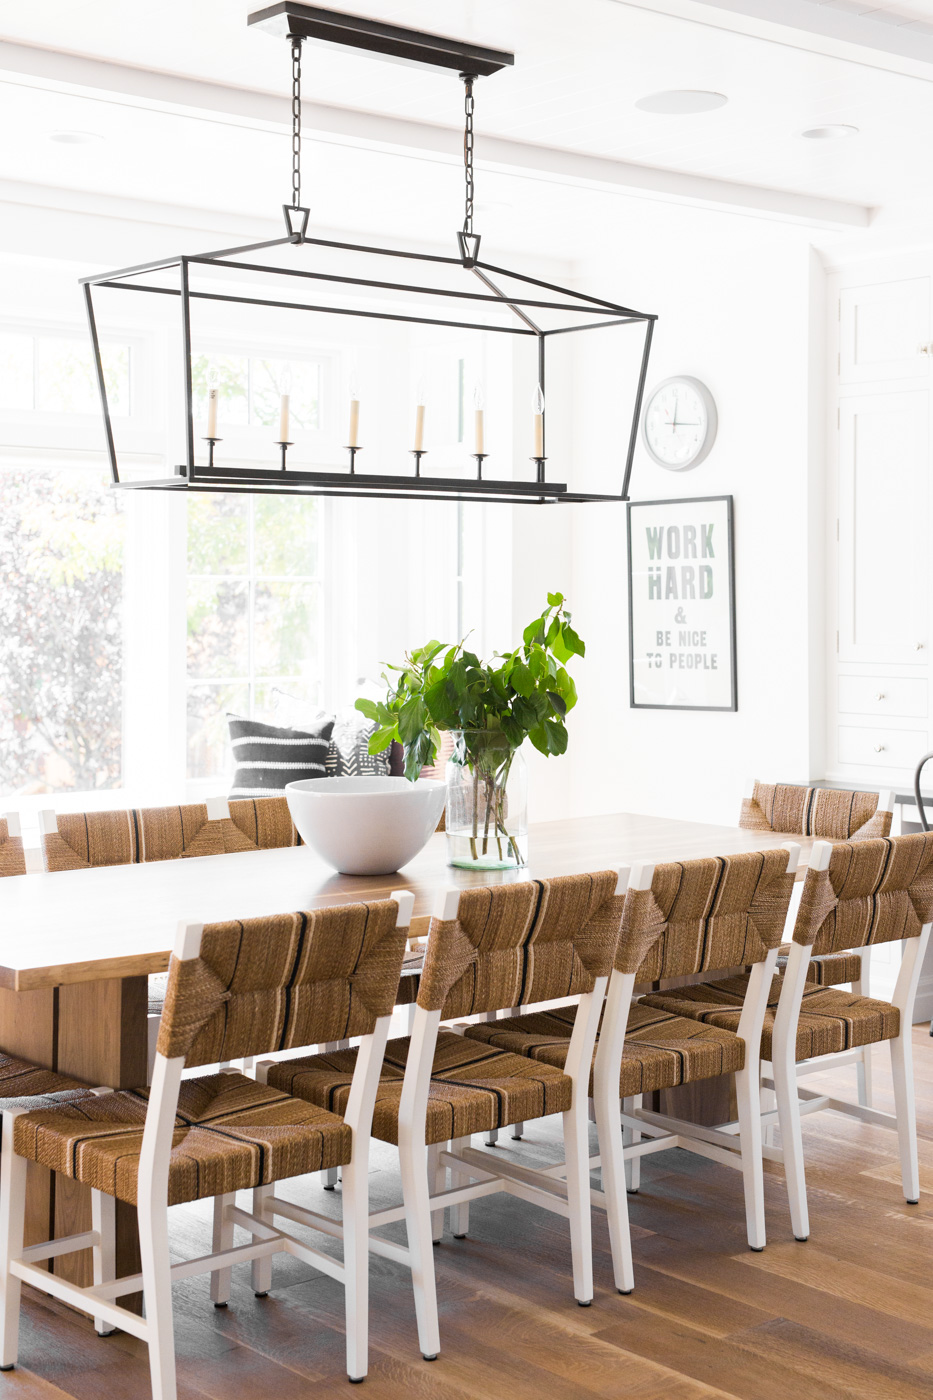 Before/After tour of Studio McGee's latest remodel || Darlana pendant from McGee & Co.